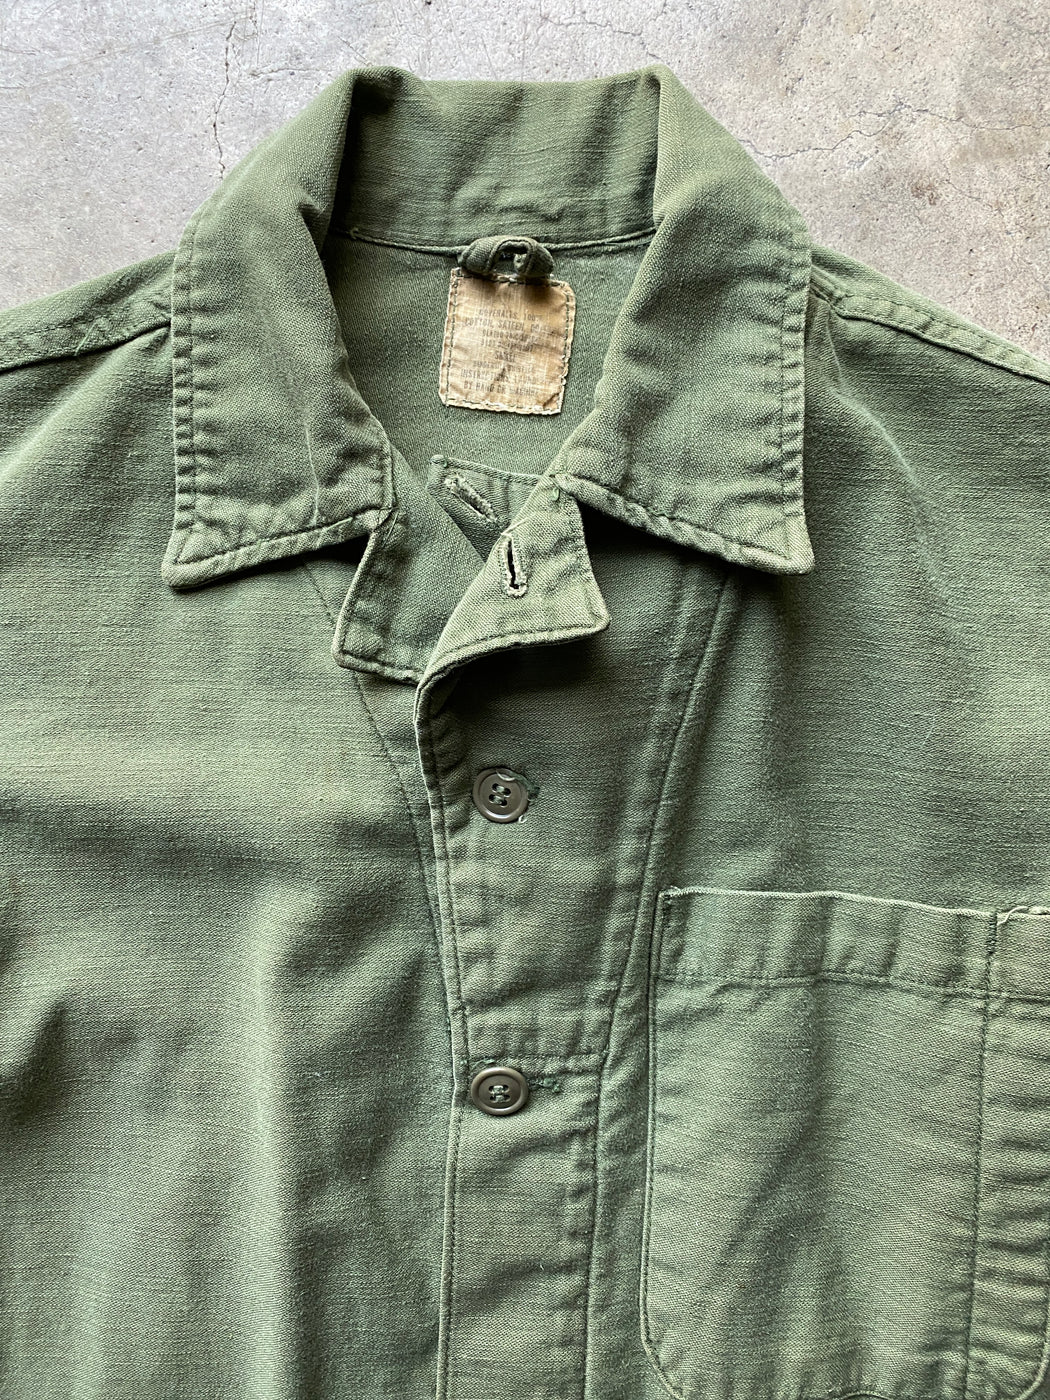 Olive Military Flight Suit Coverall